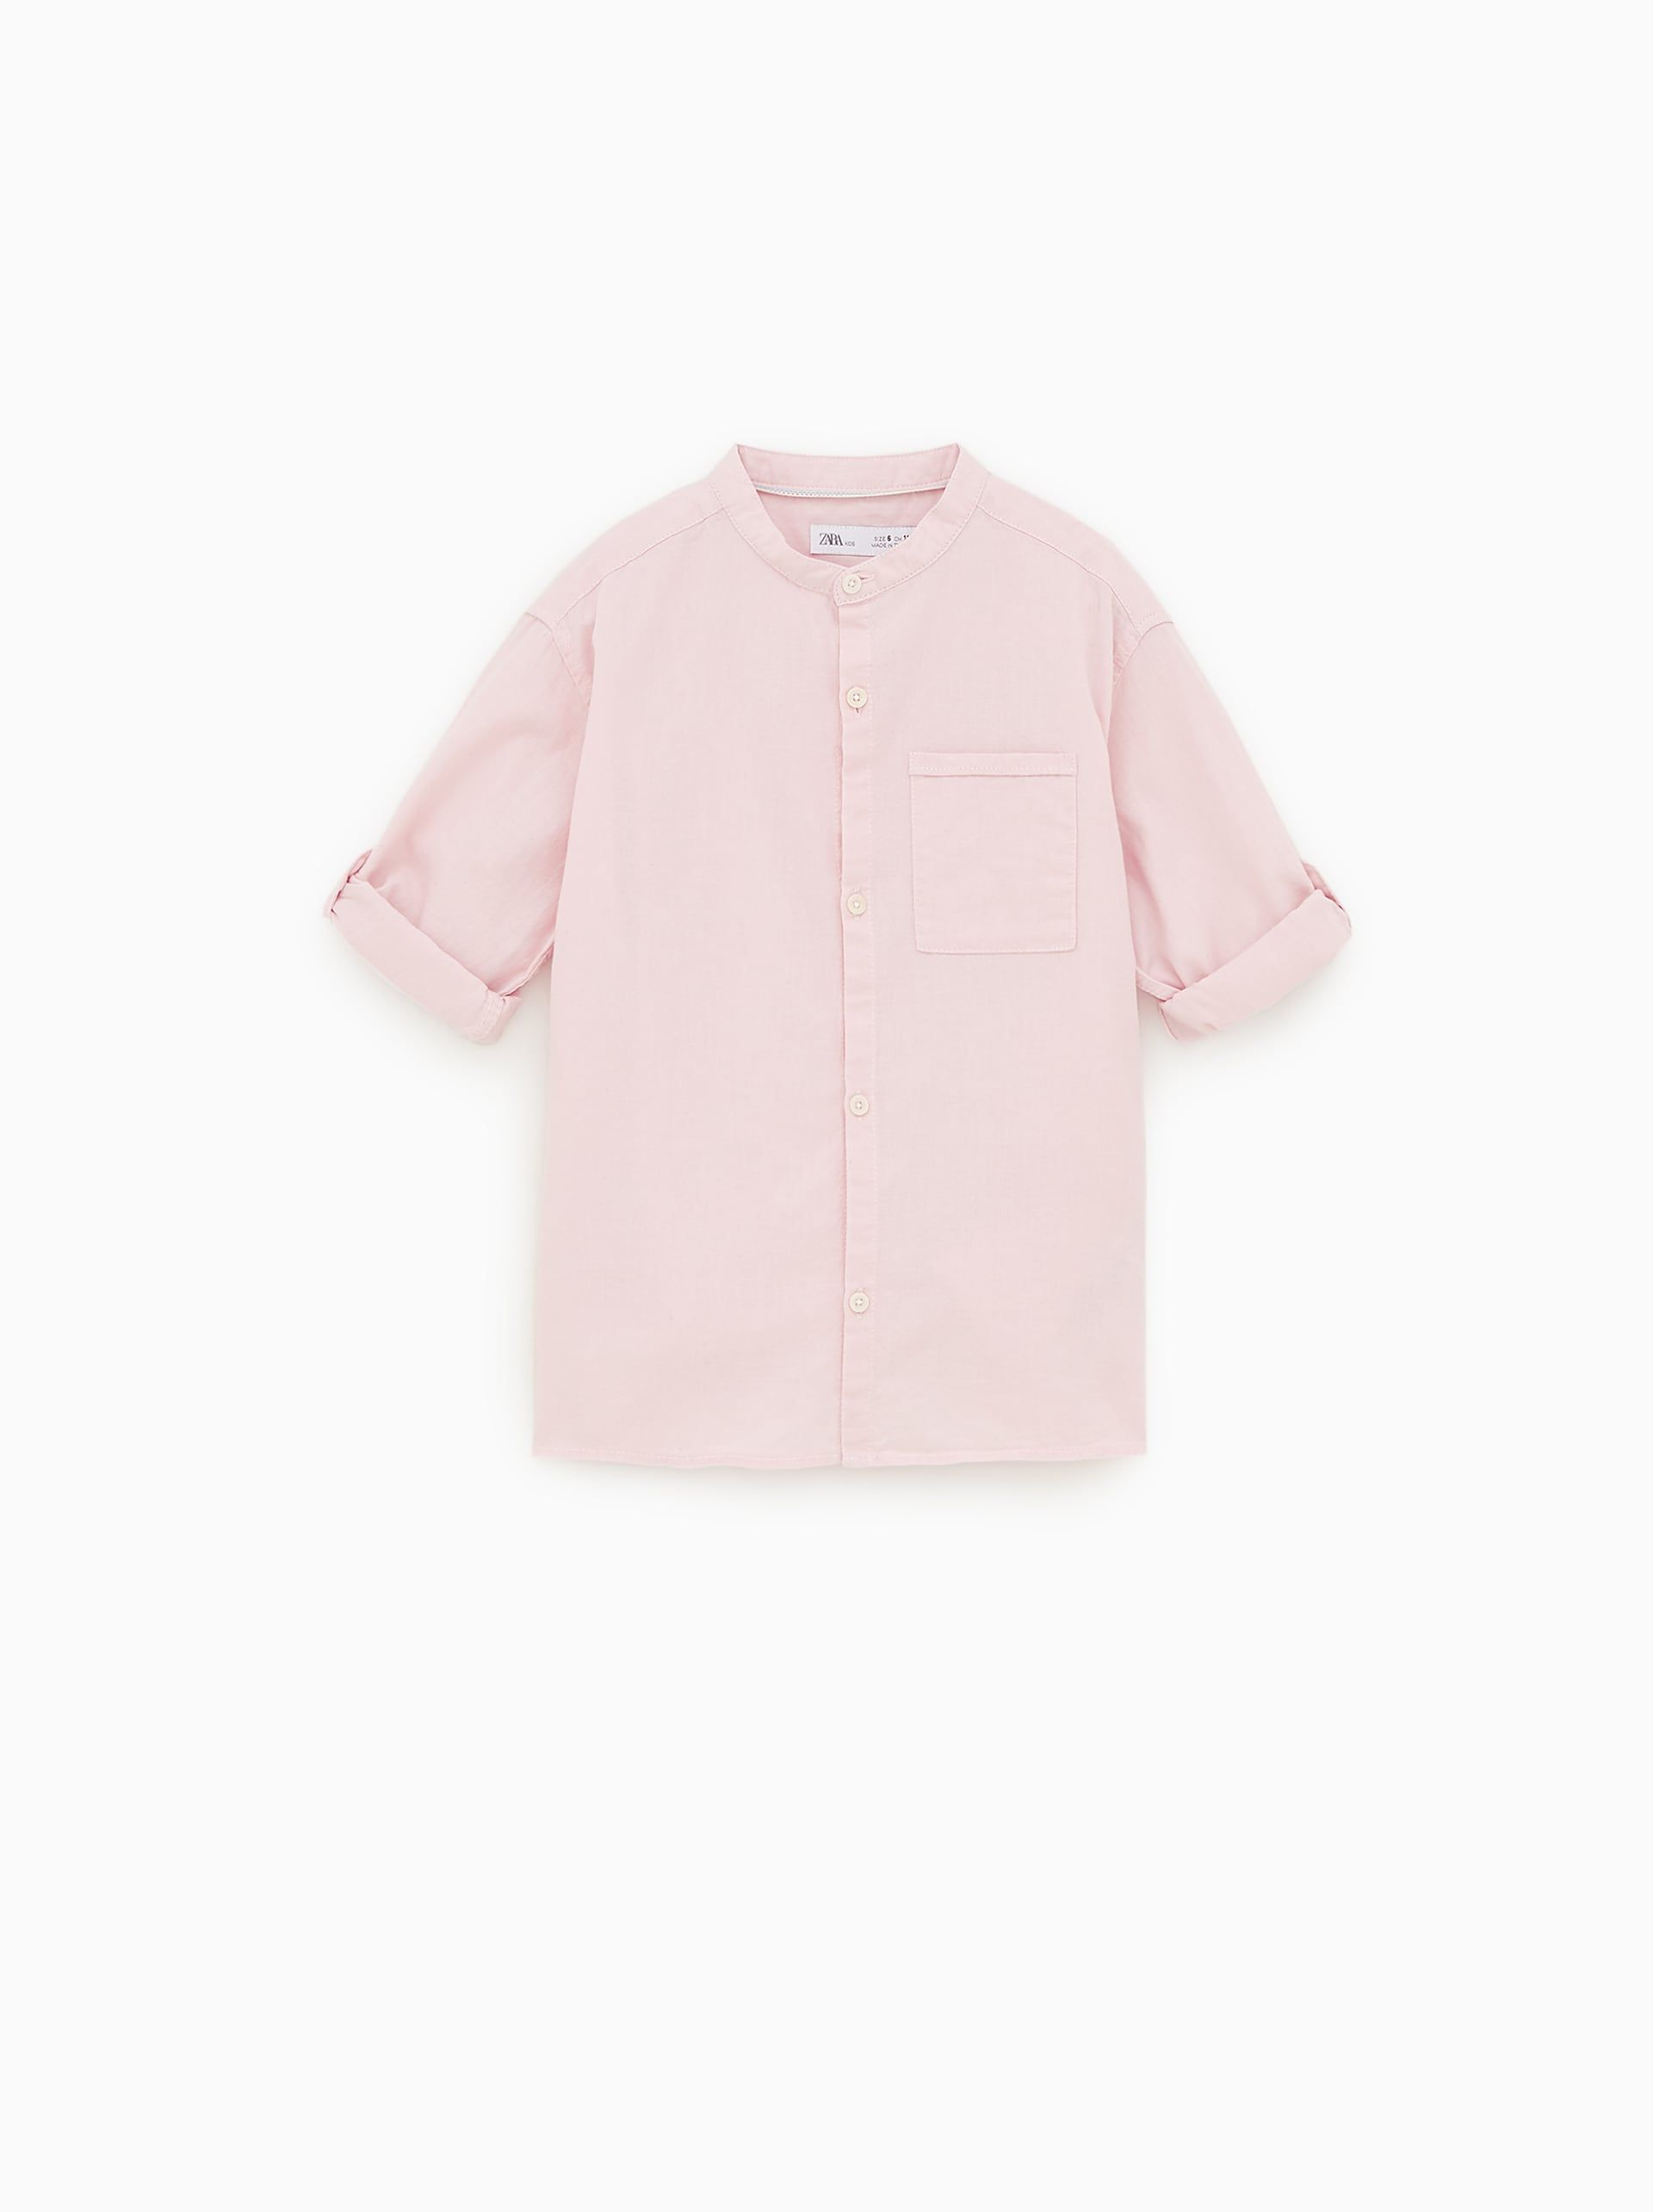 3244d06975d TEXTURED SHIRT WITH POCKET - Item available in more colors